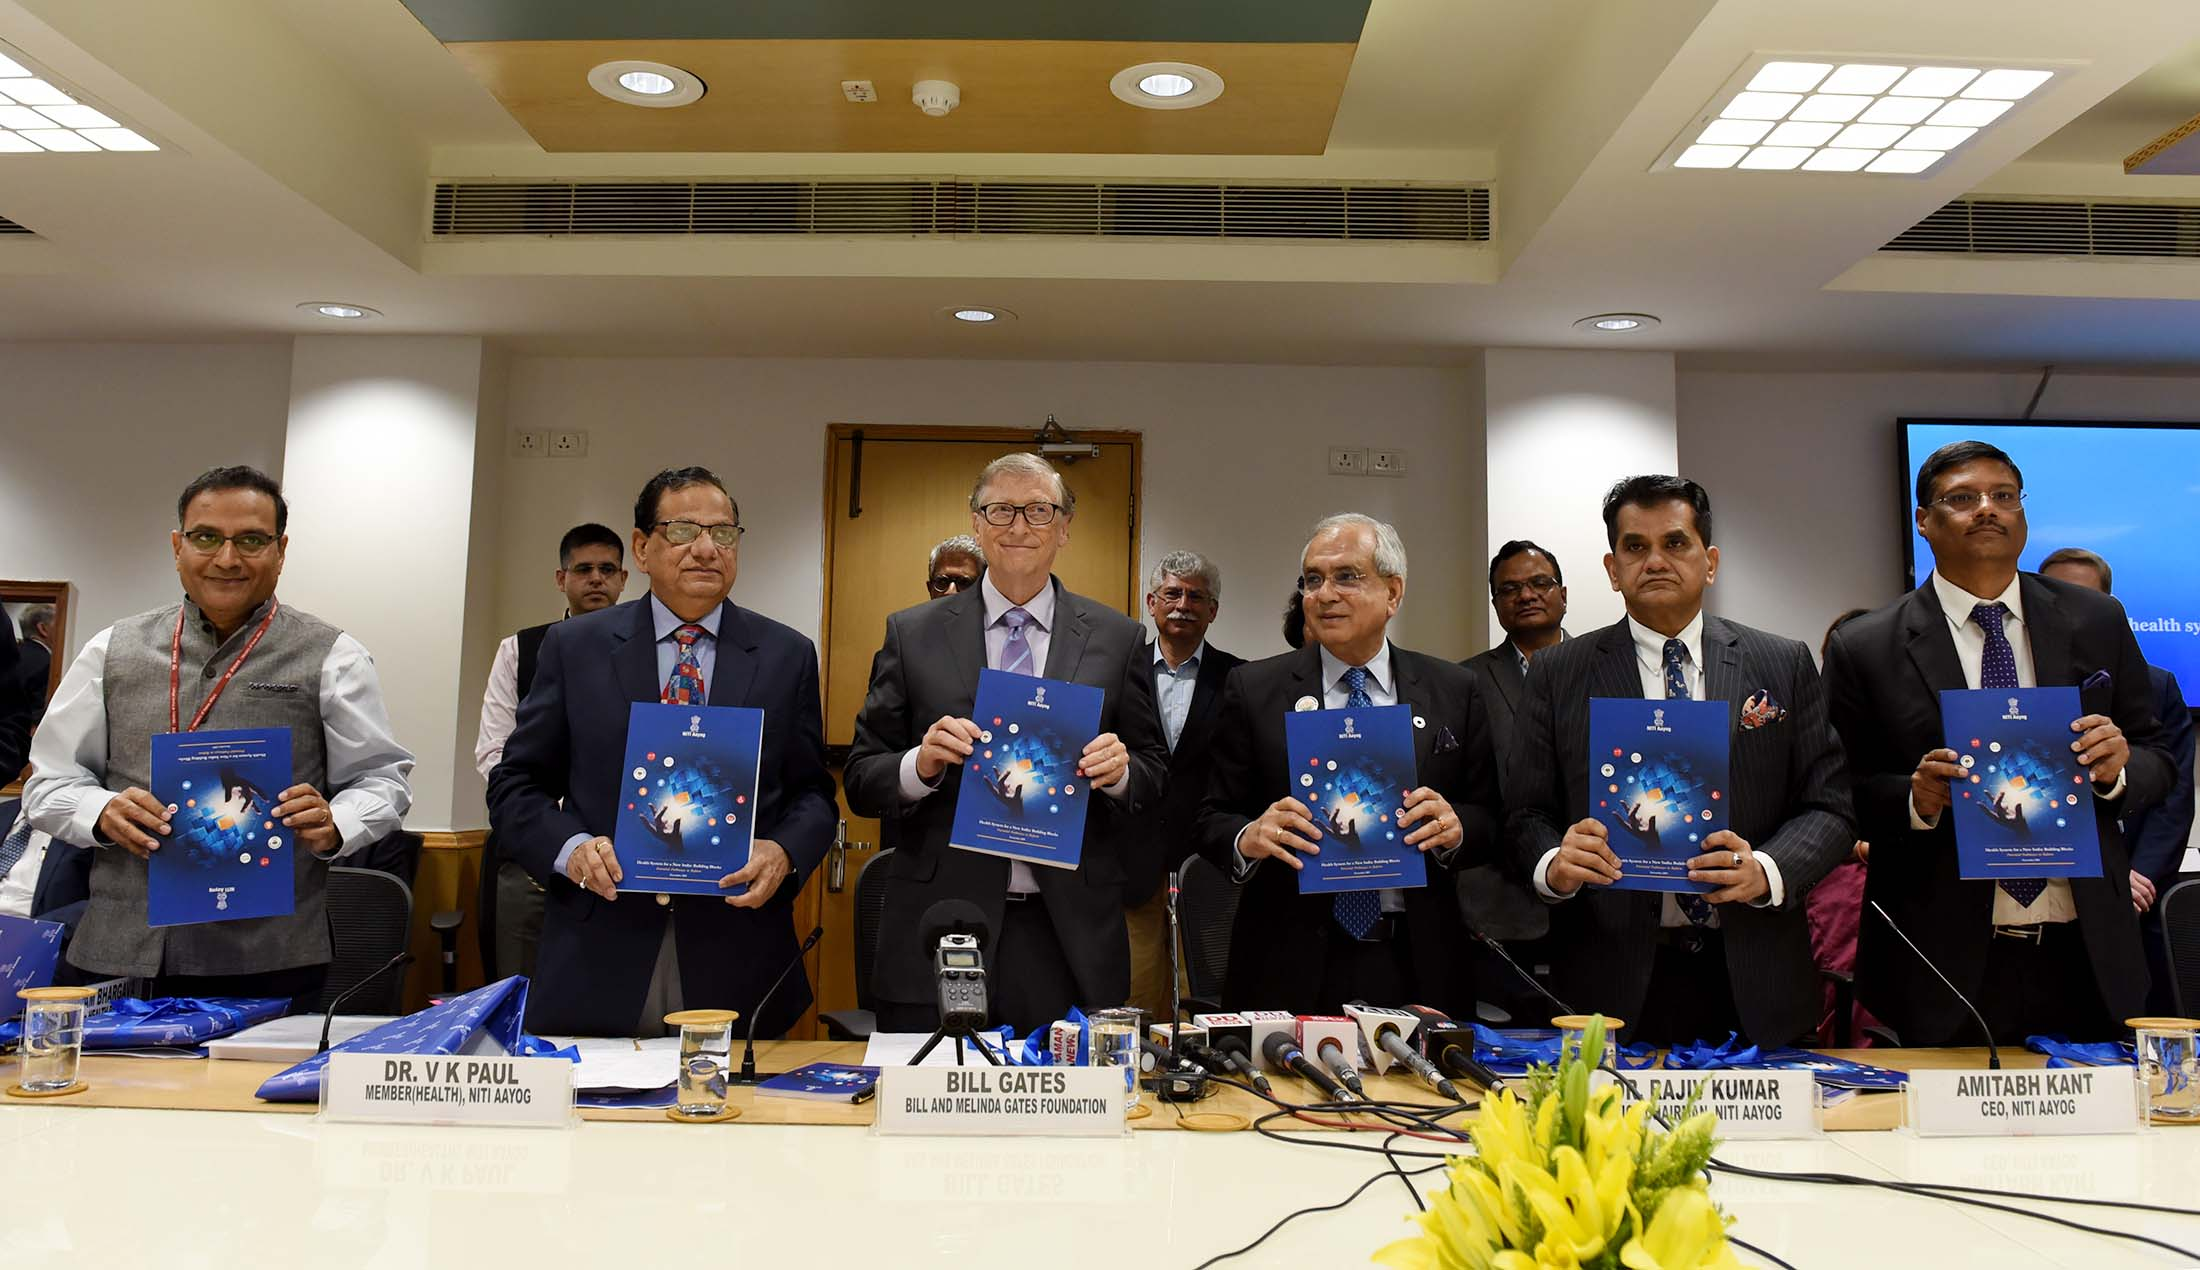 NITI-Aayog-releases-Report-on-Building-a-21st-Century-Health-System-for-India